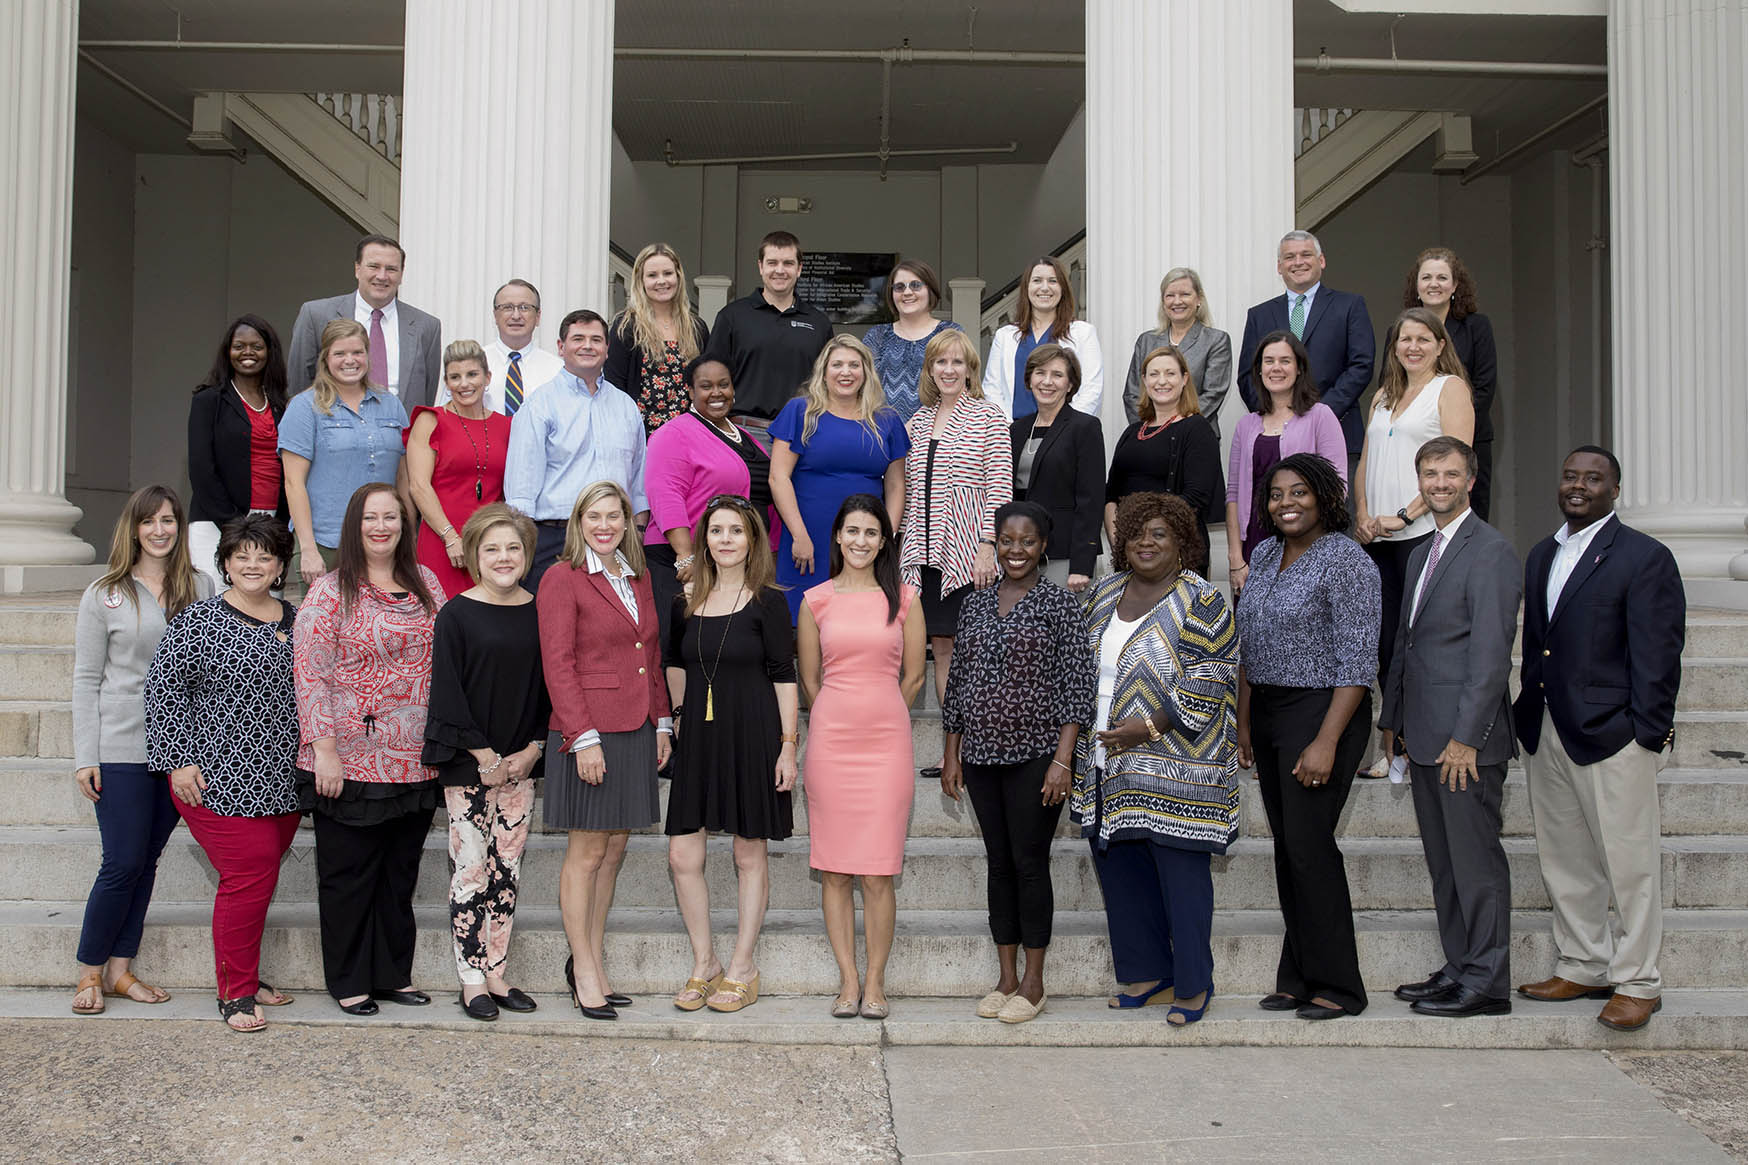 More than 70 UGA faculty and staff members were recently recognized for earning the UGA Diversity and Inclusion Certificate, which is presented to employees who voluntarily complete six courses covering a variety of diversity-related topics.